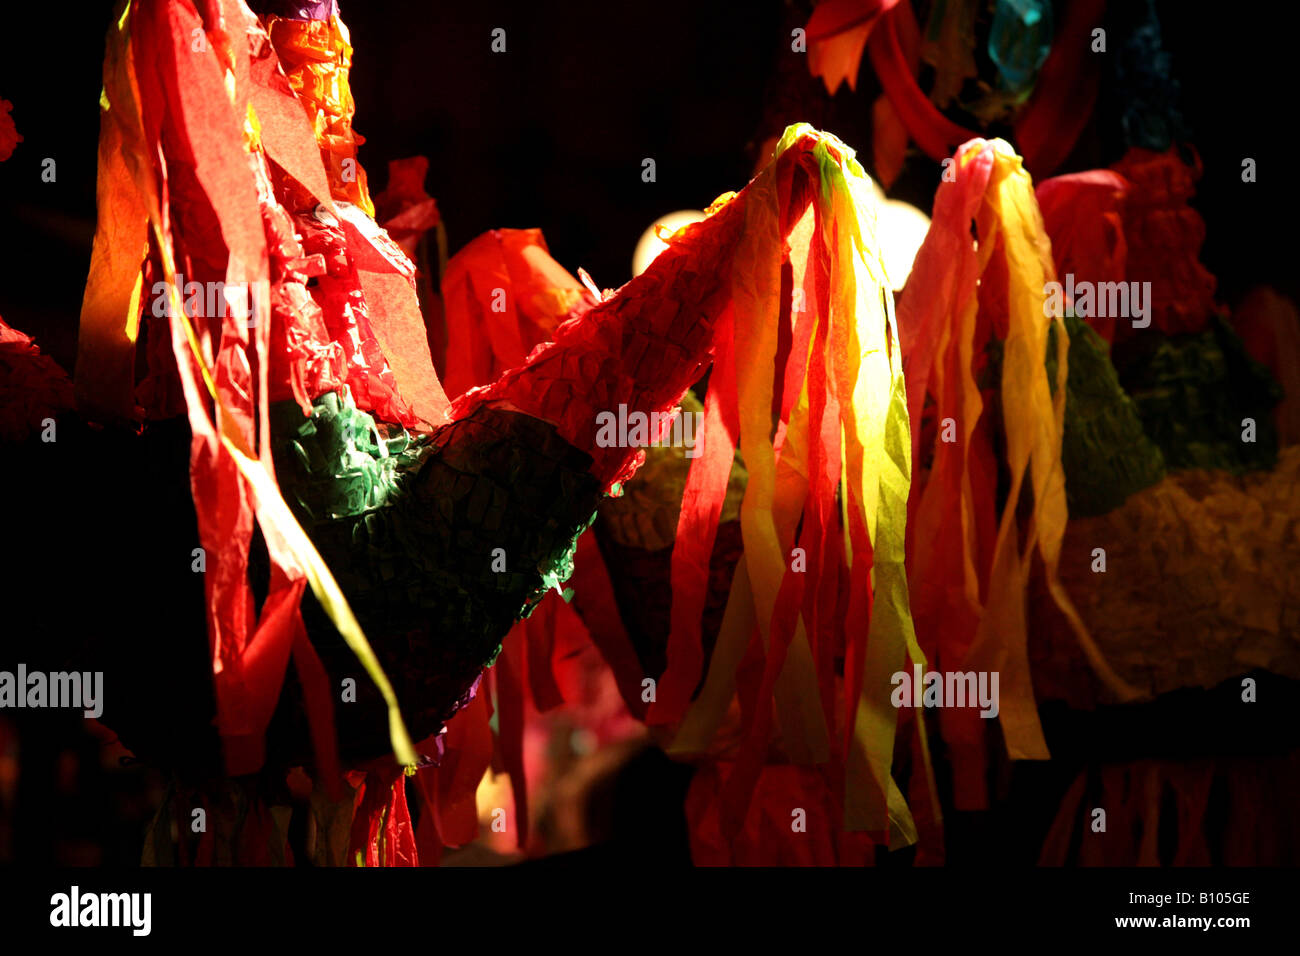 Piñatas on display at a mexican market - Stock Image